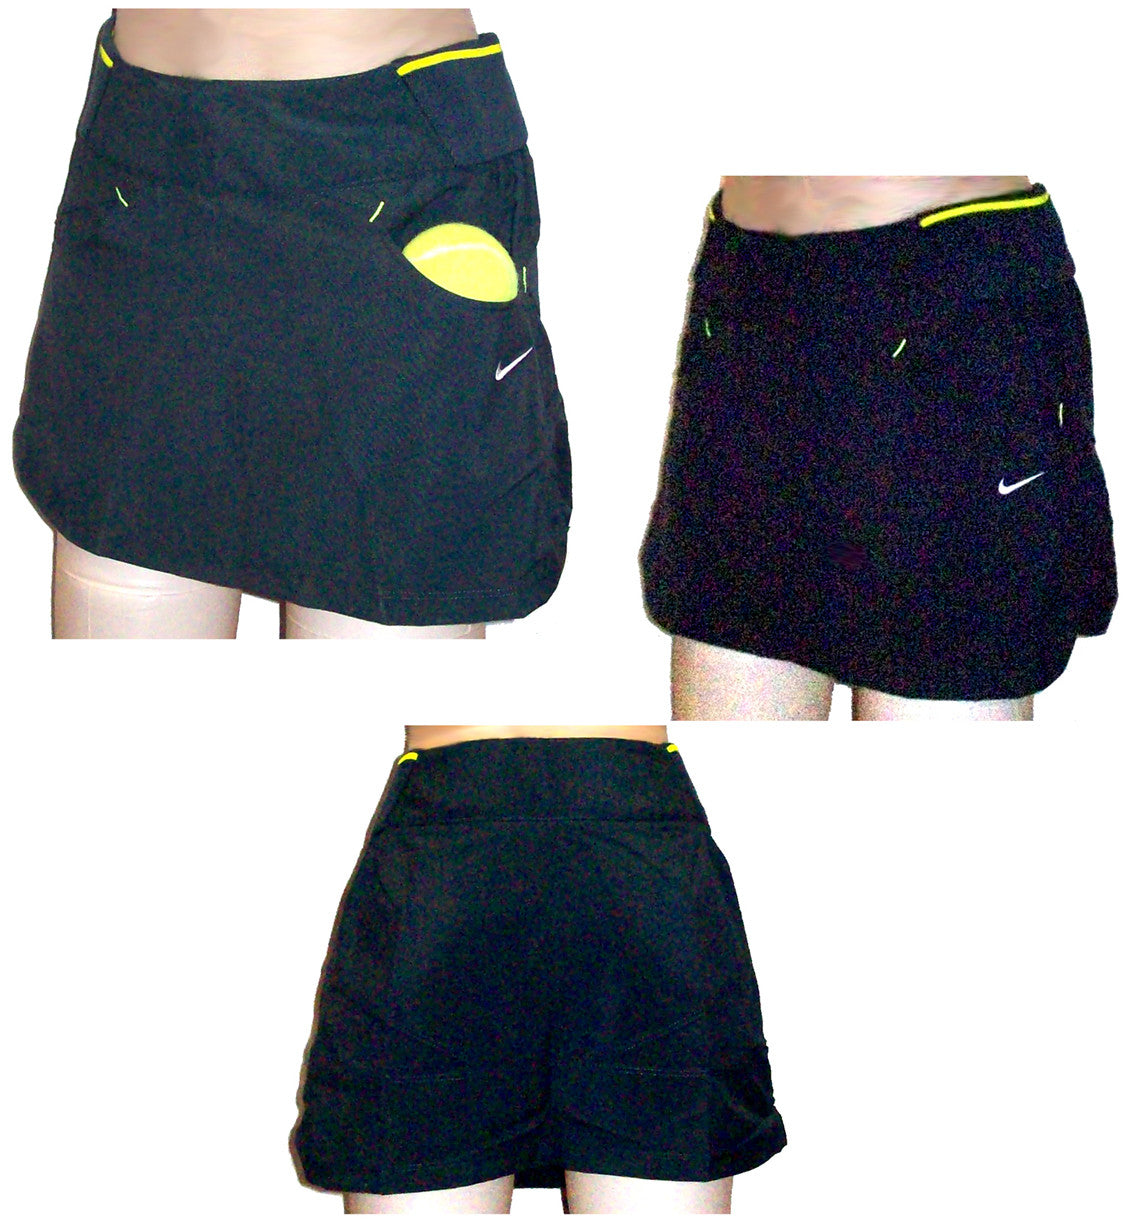 NIKE FIT DRY WOMENS SHARAPOVA TENNIS SKIRT SKORT  CHARCOAL